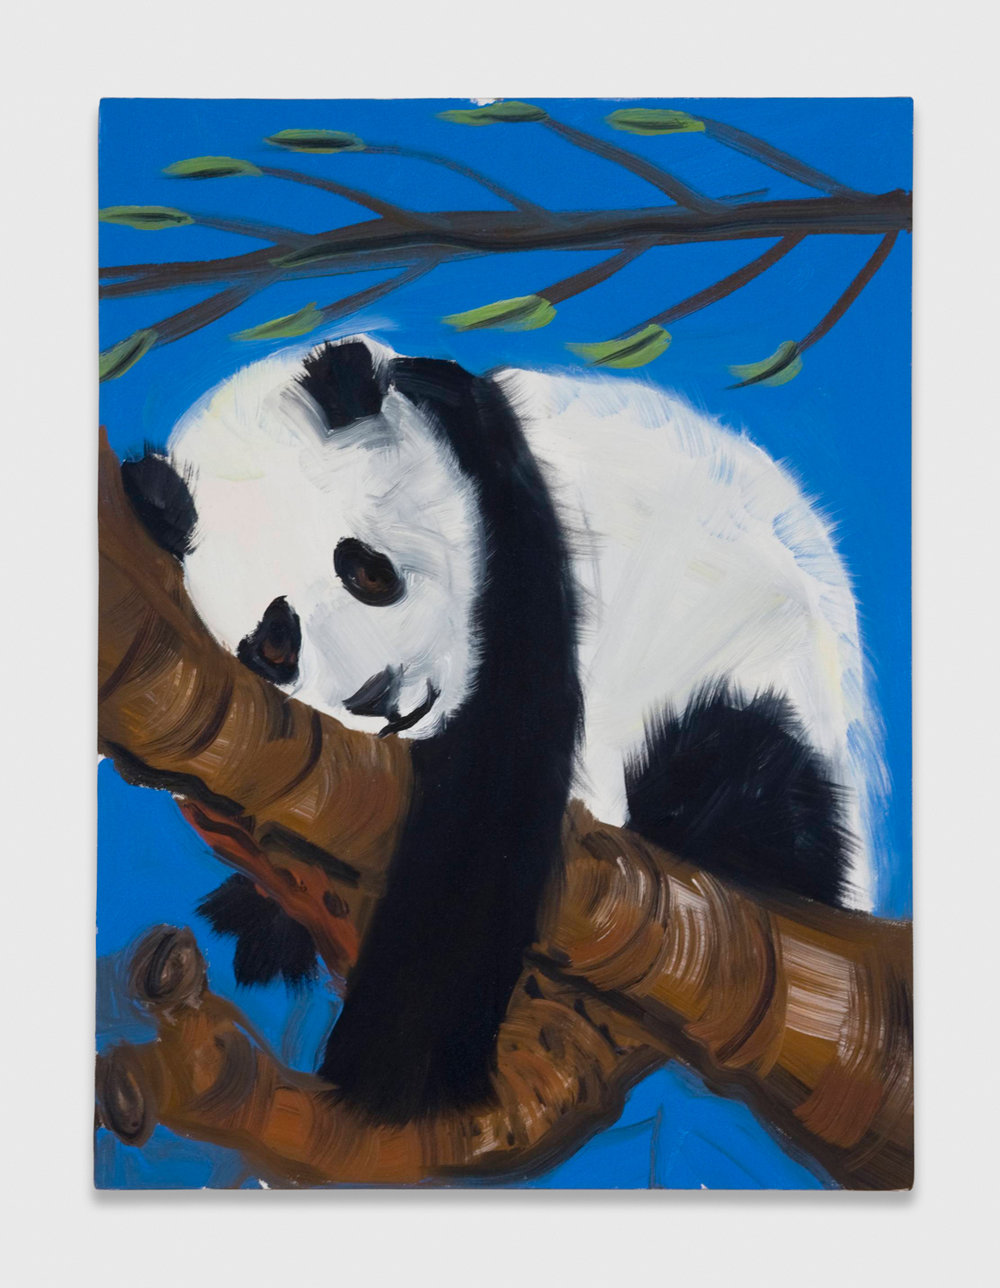 Ann Craven  Panda Again Again  2008 Oil on canvas 24h x 18w in AC036